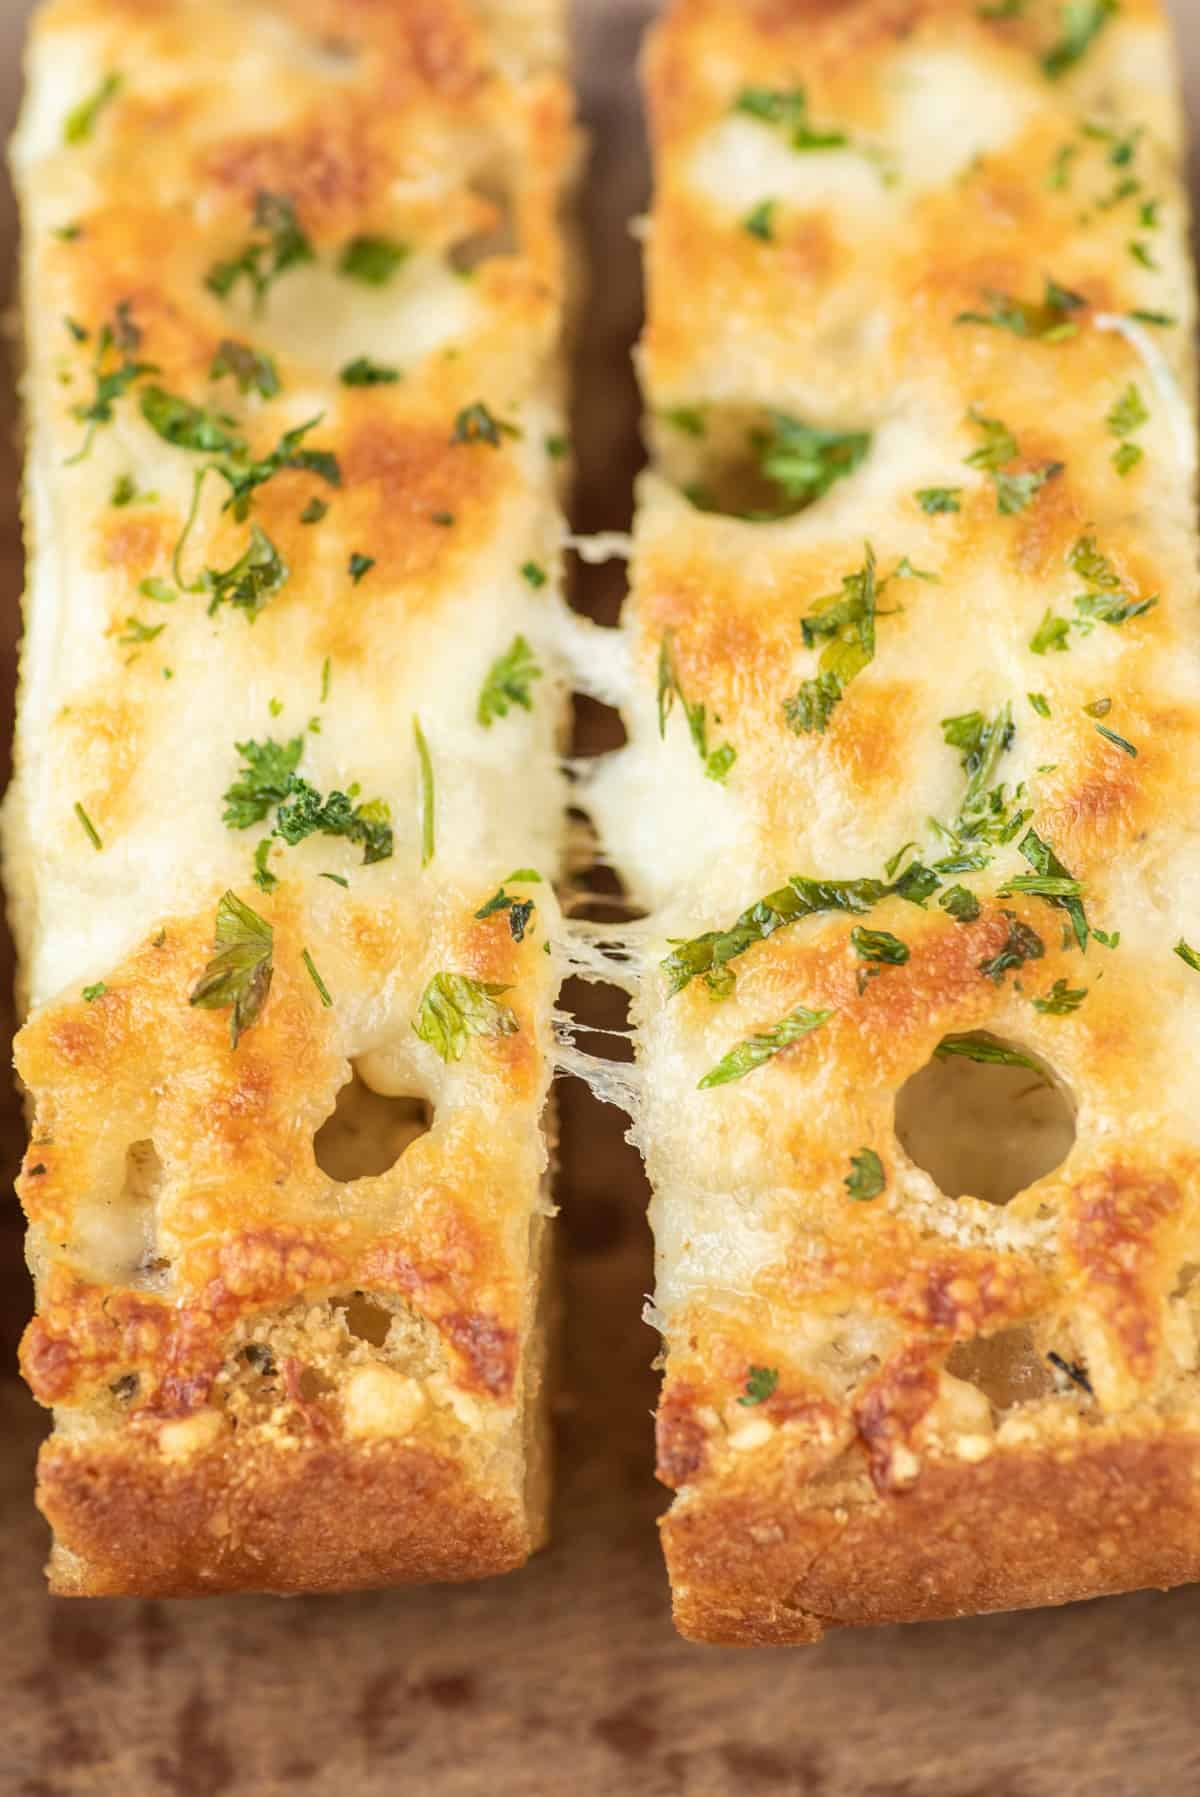 Cheesy garlic bread being pulled apart.